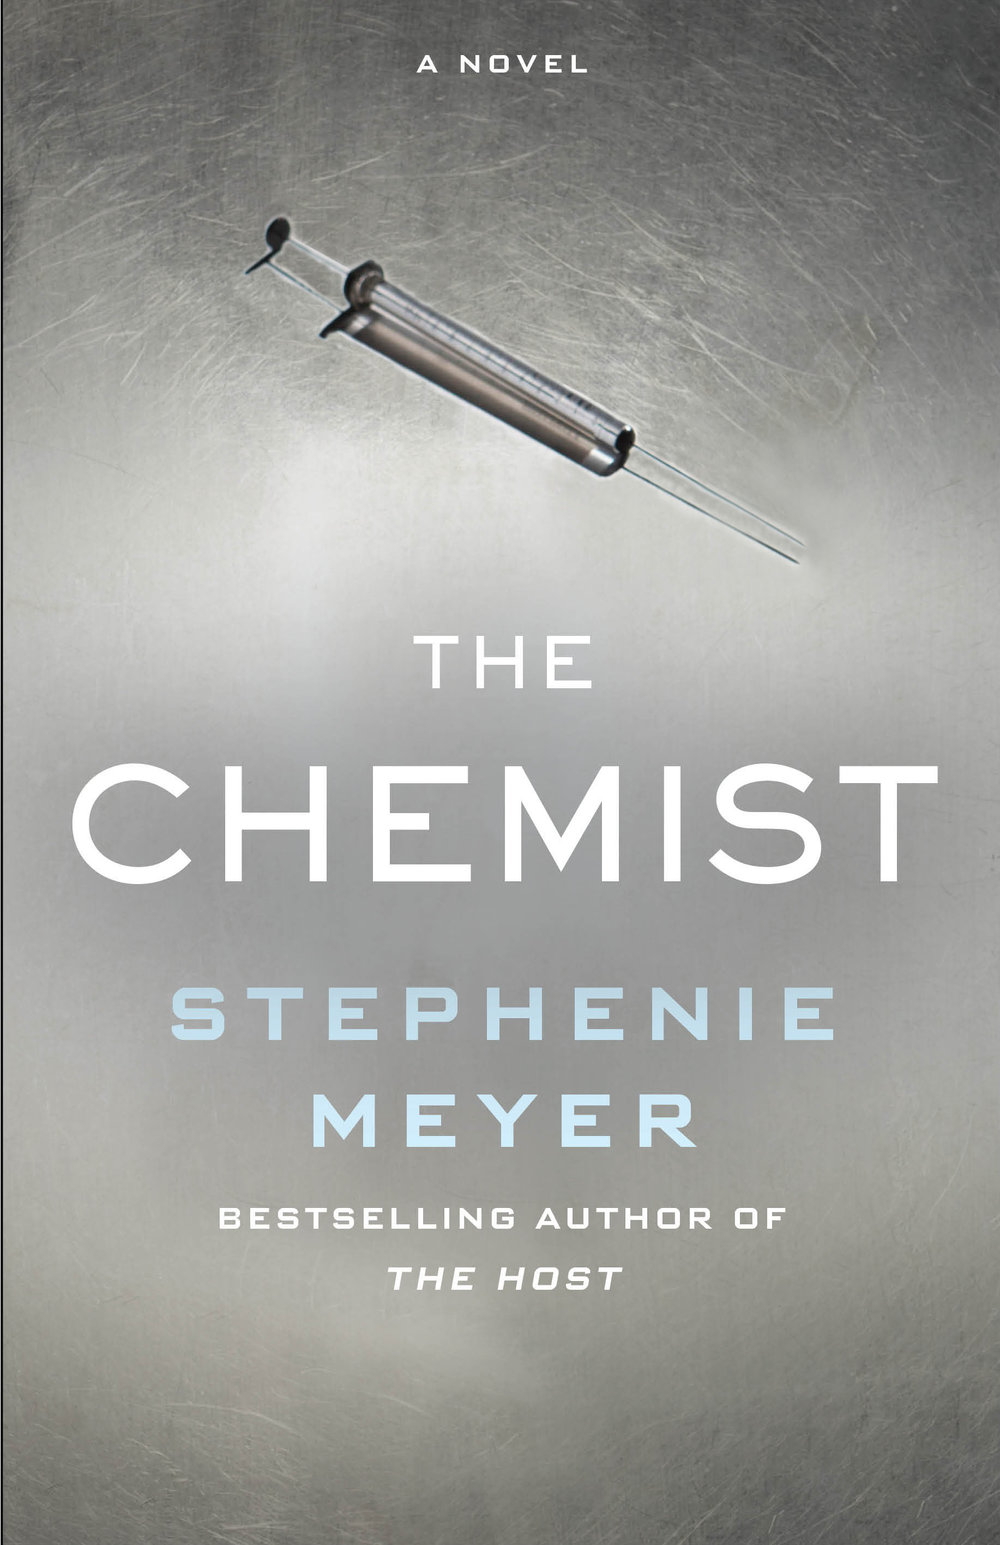 ( The Chemist ; Back Bay Books; July 11, 2017; ISBN: 978-0-316-38784-2)